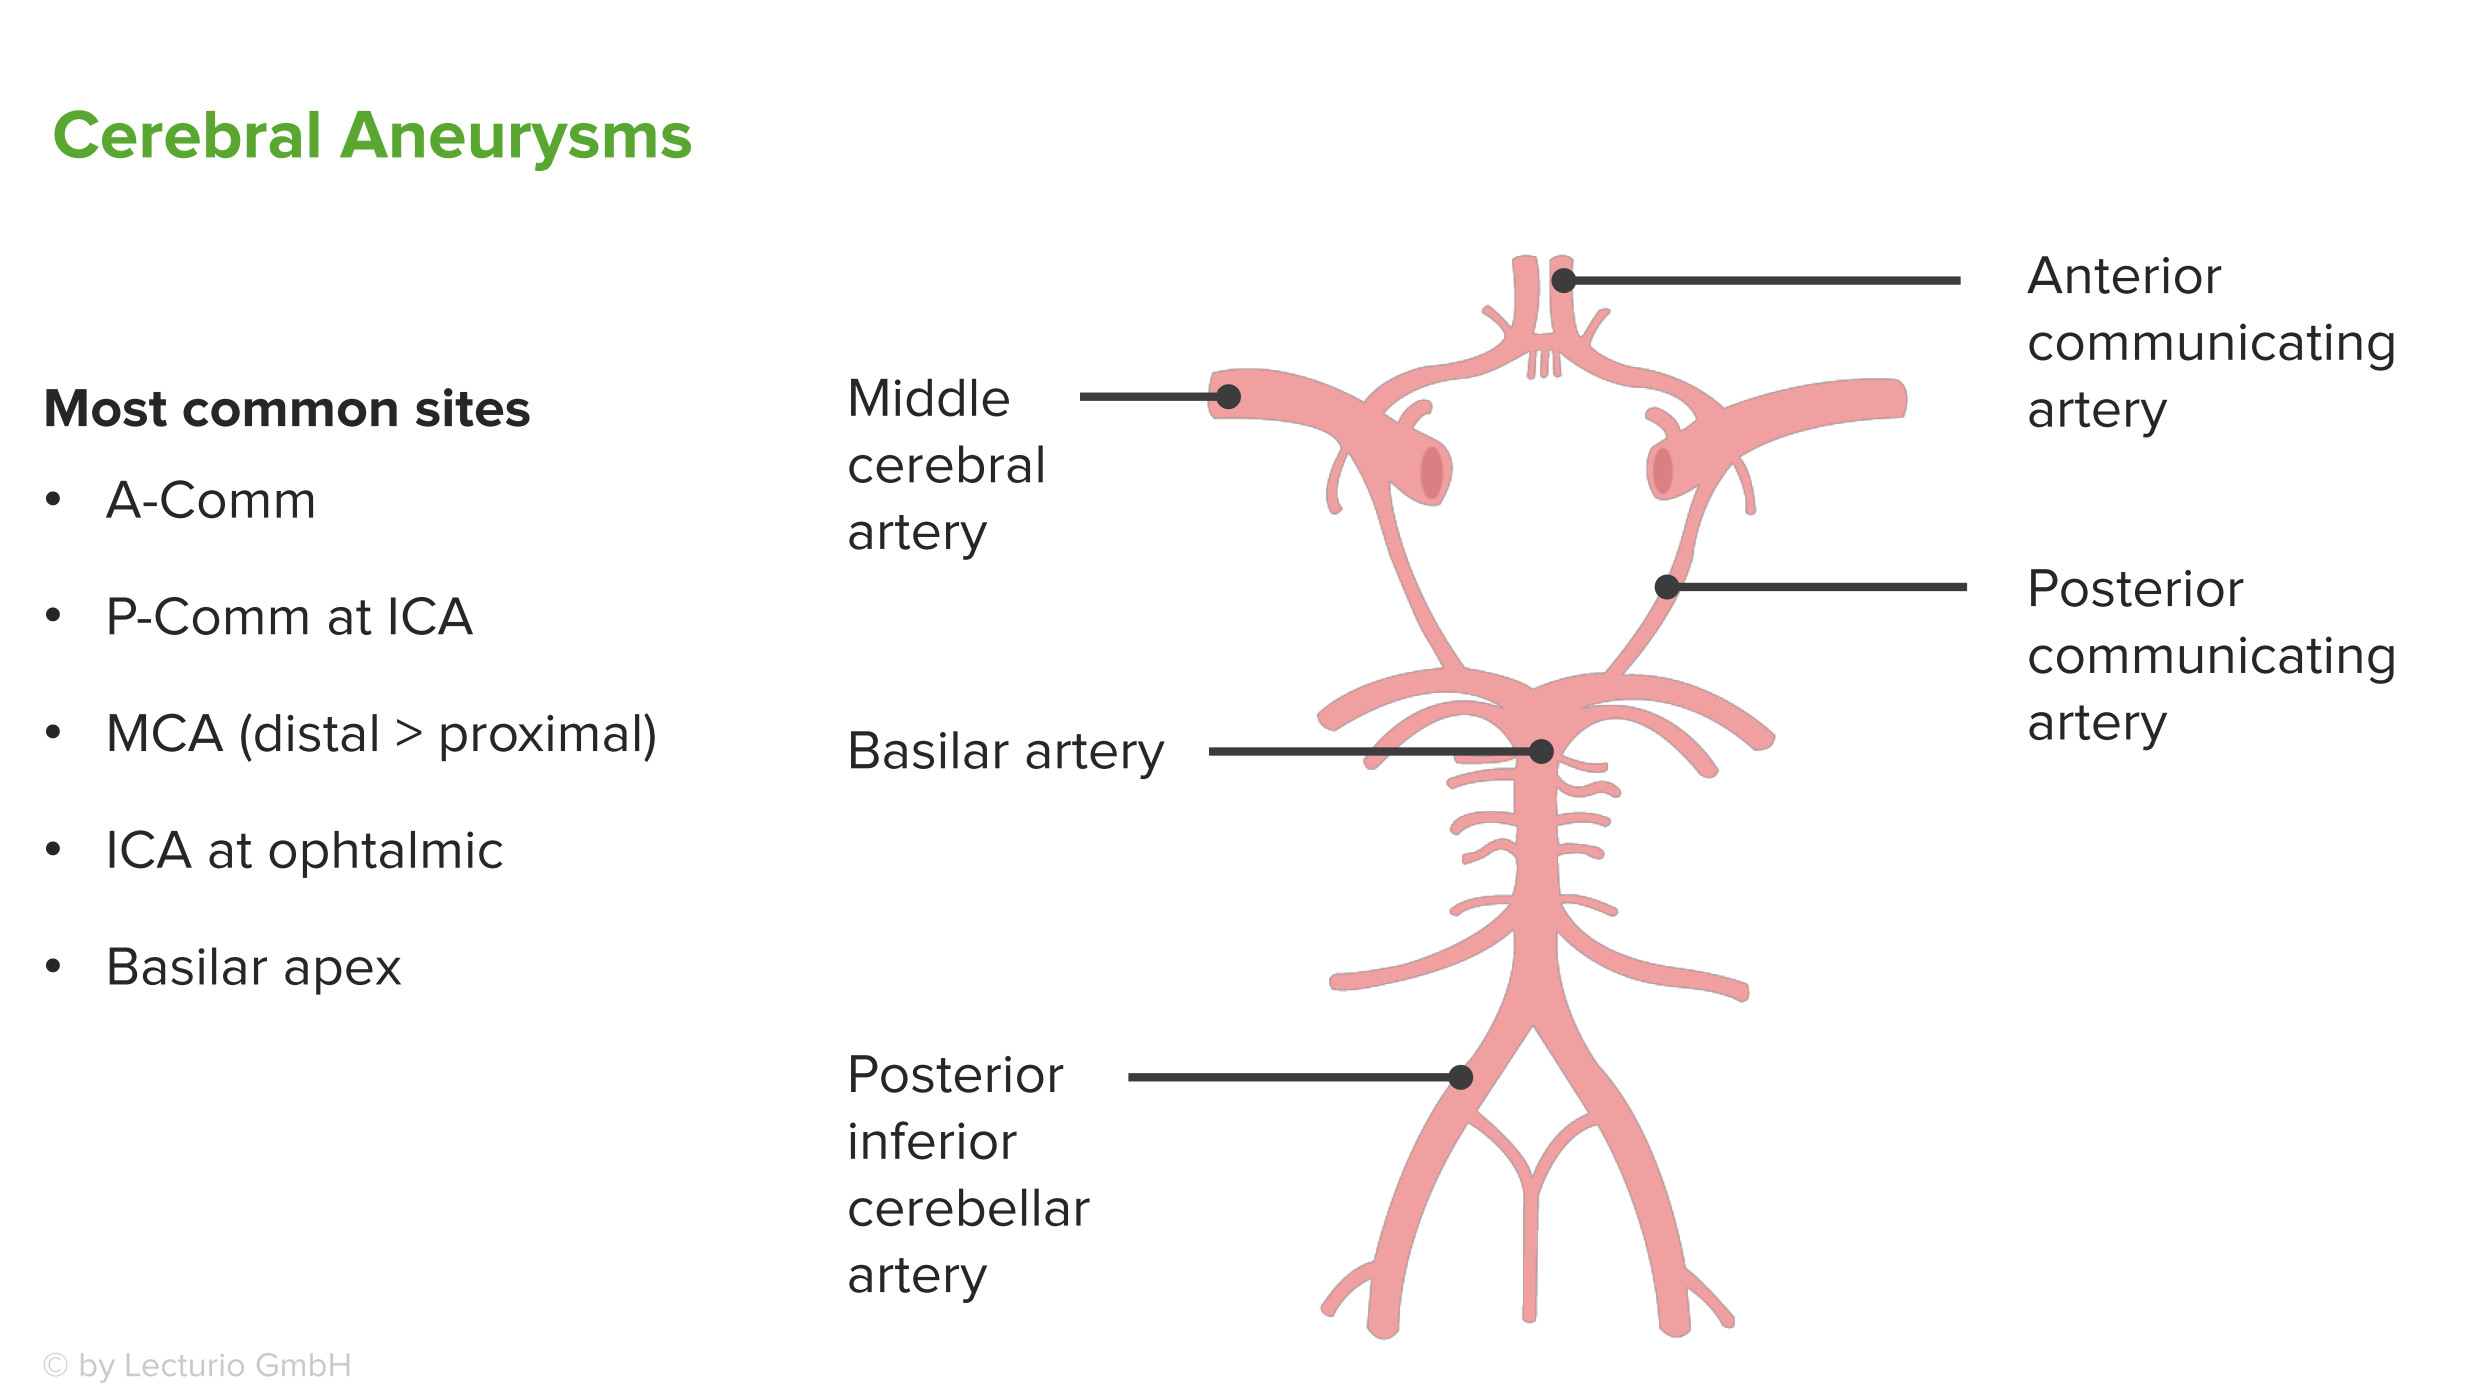 diagnosis and treatment of brain aneurysm Aneurysm: treatments inroduction because some types of aneurysms can be life-threatening, prompt diagnosis and treatment of the condition is key to maintaining.